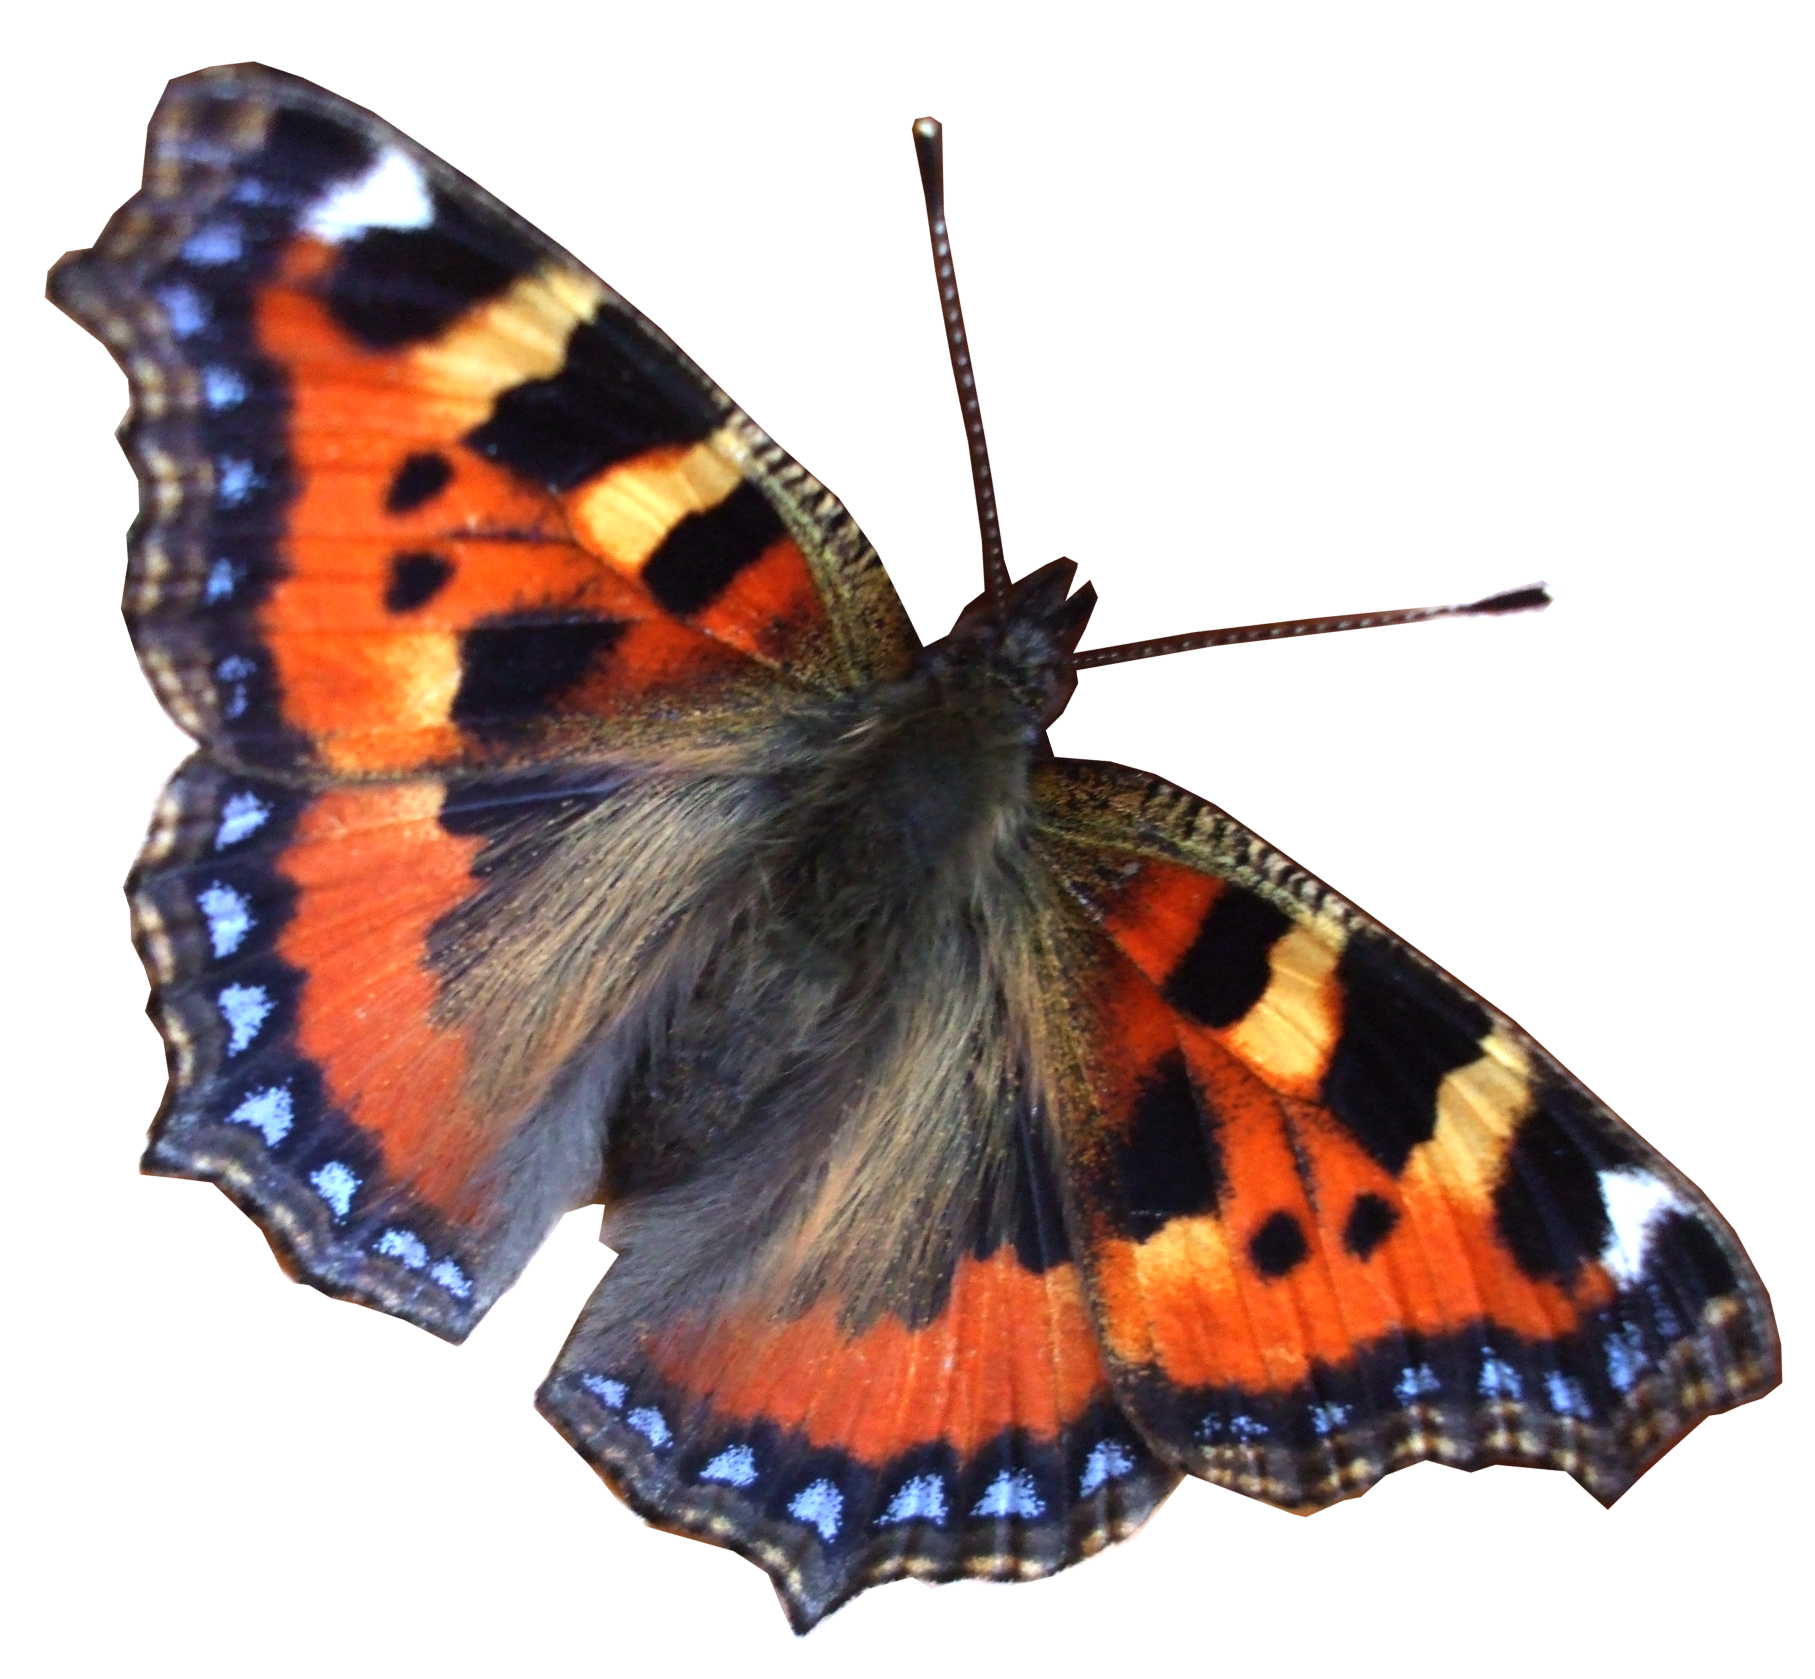 Download Free High-quality Butterfly Png Transparent Images image #6740